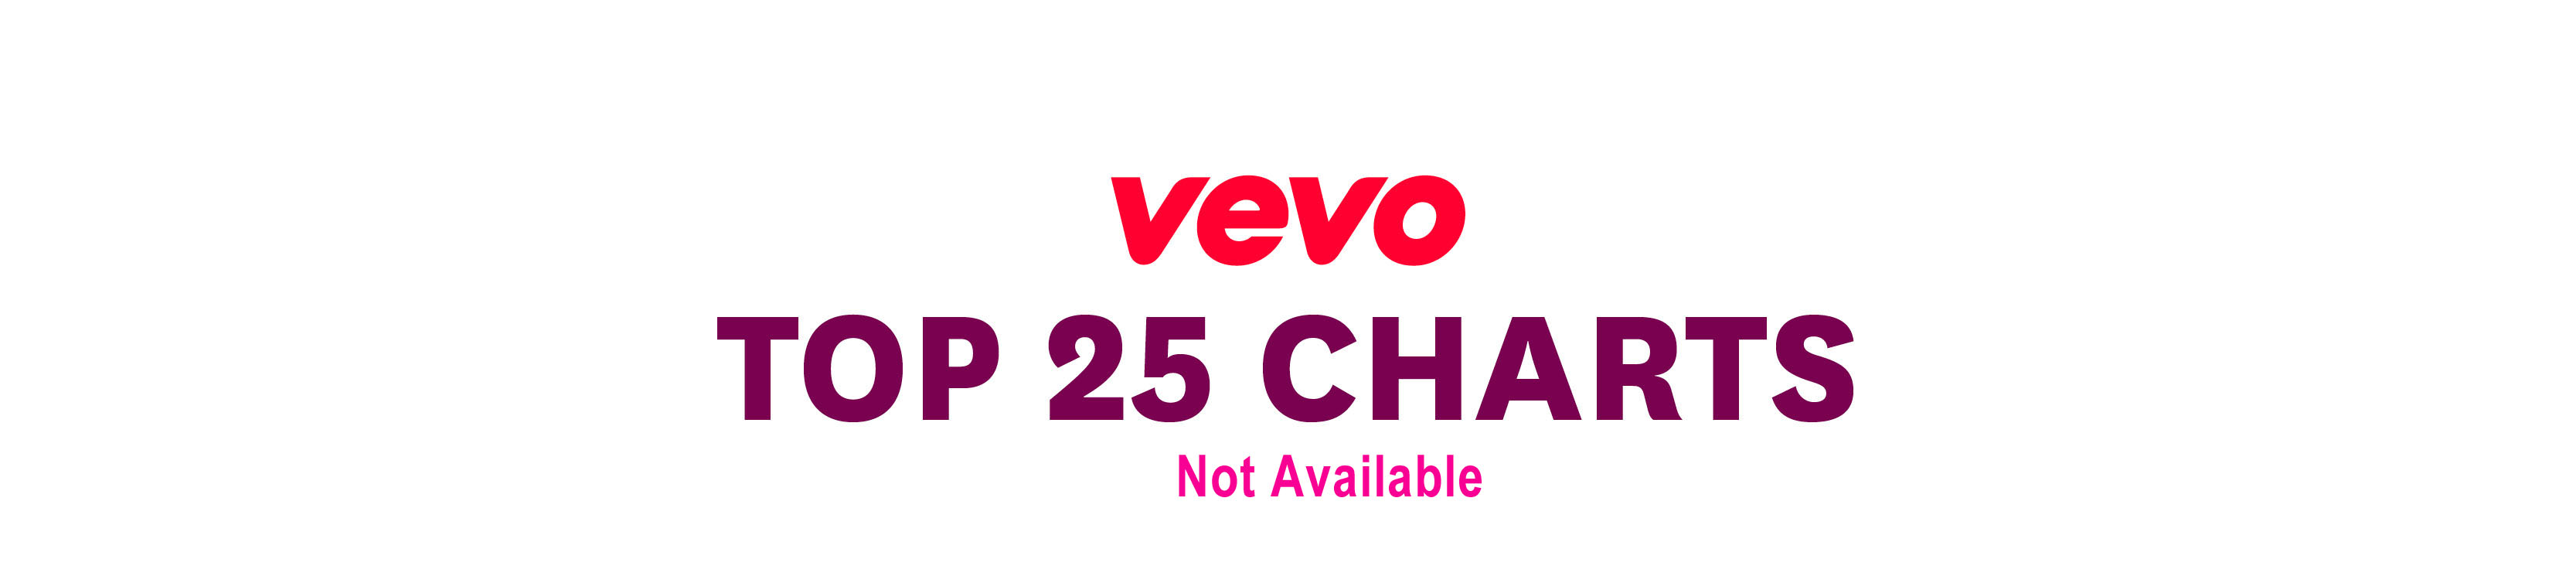 Charts/Ventas » Bad Blood [#1USA/CAN/NZ/AUS #2WW/EU #4UK] - Página 7 VEVO_Music_Charts